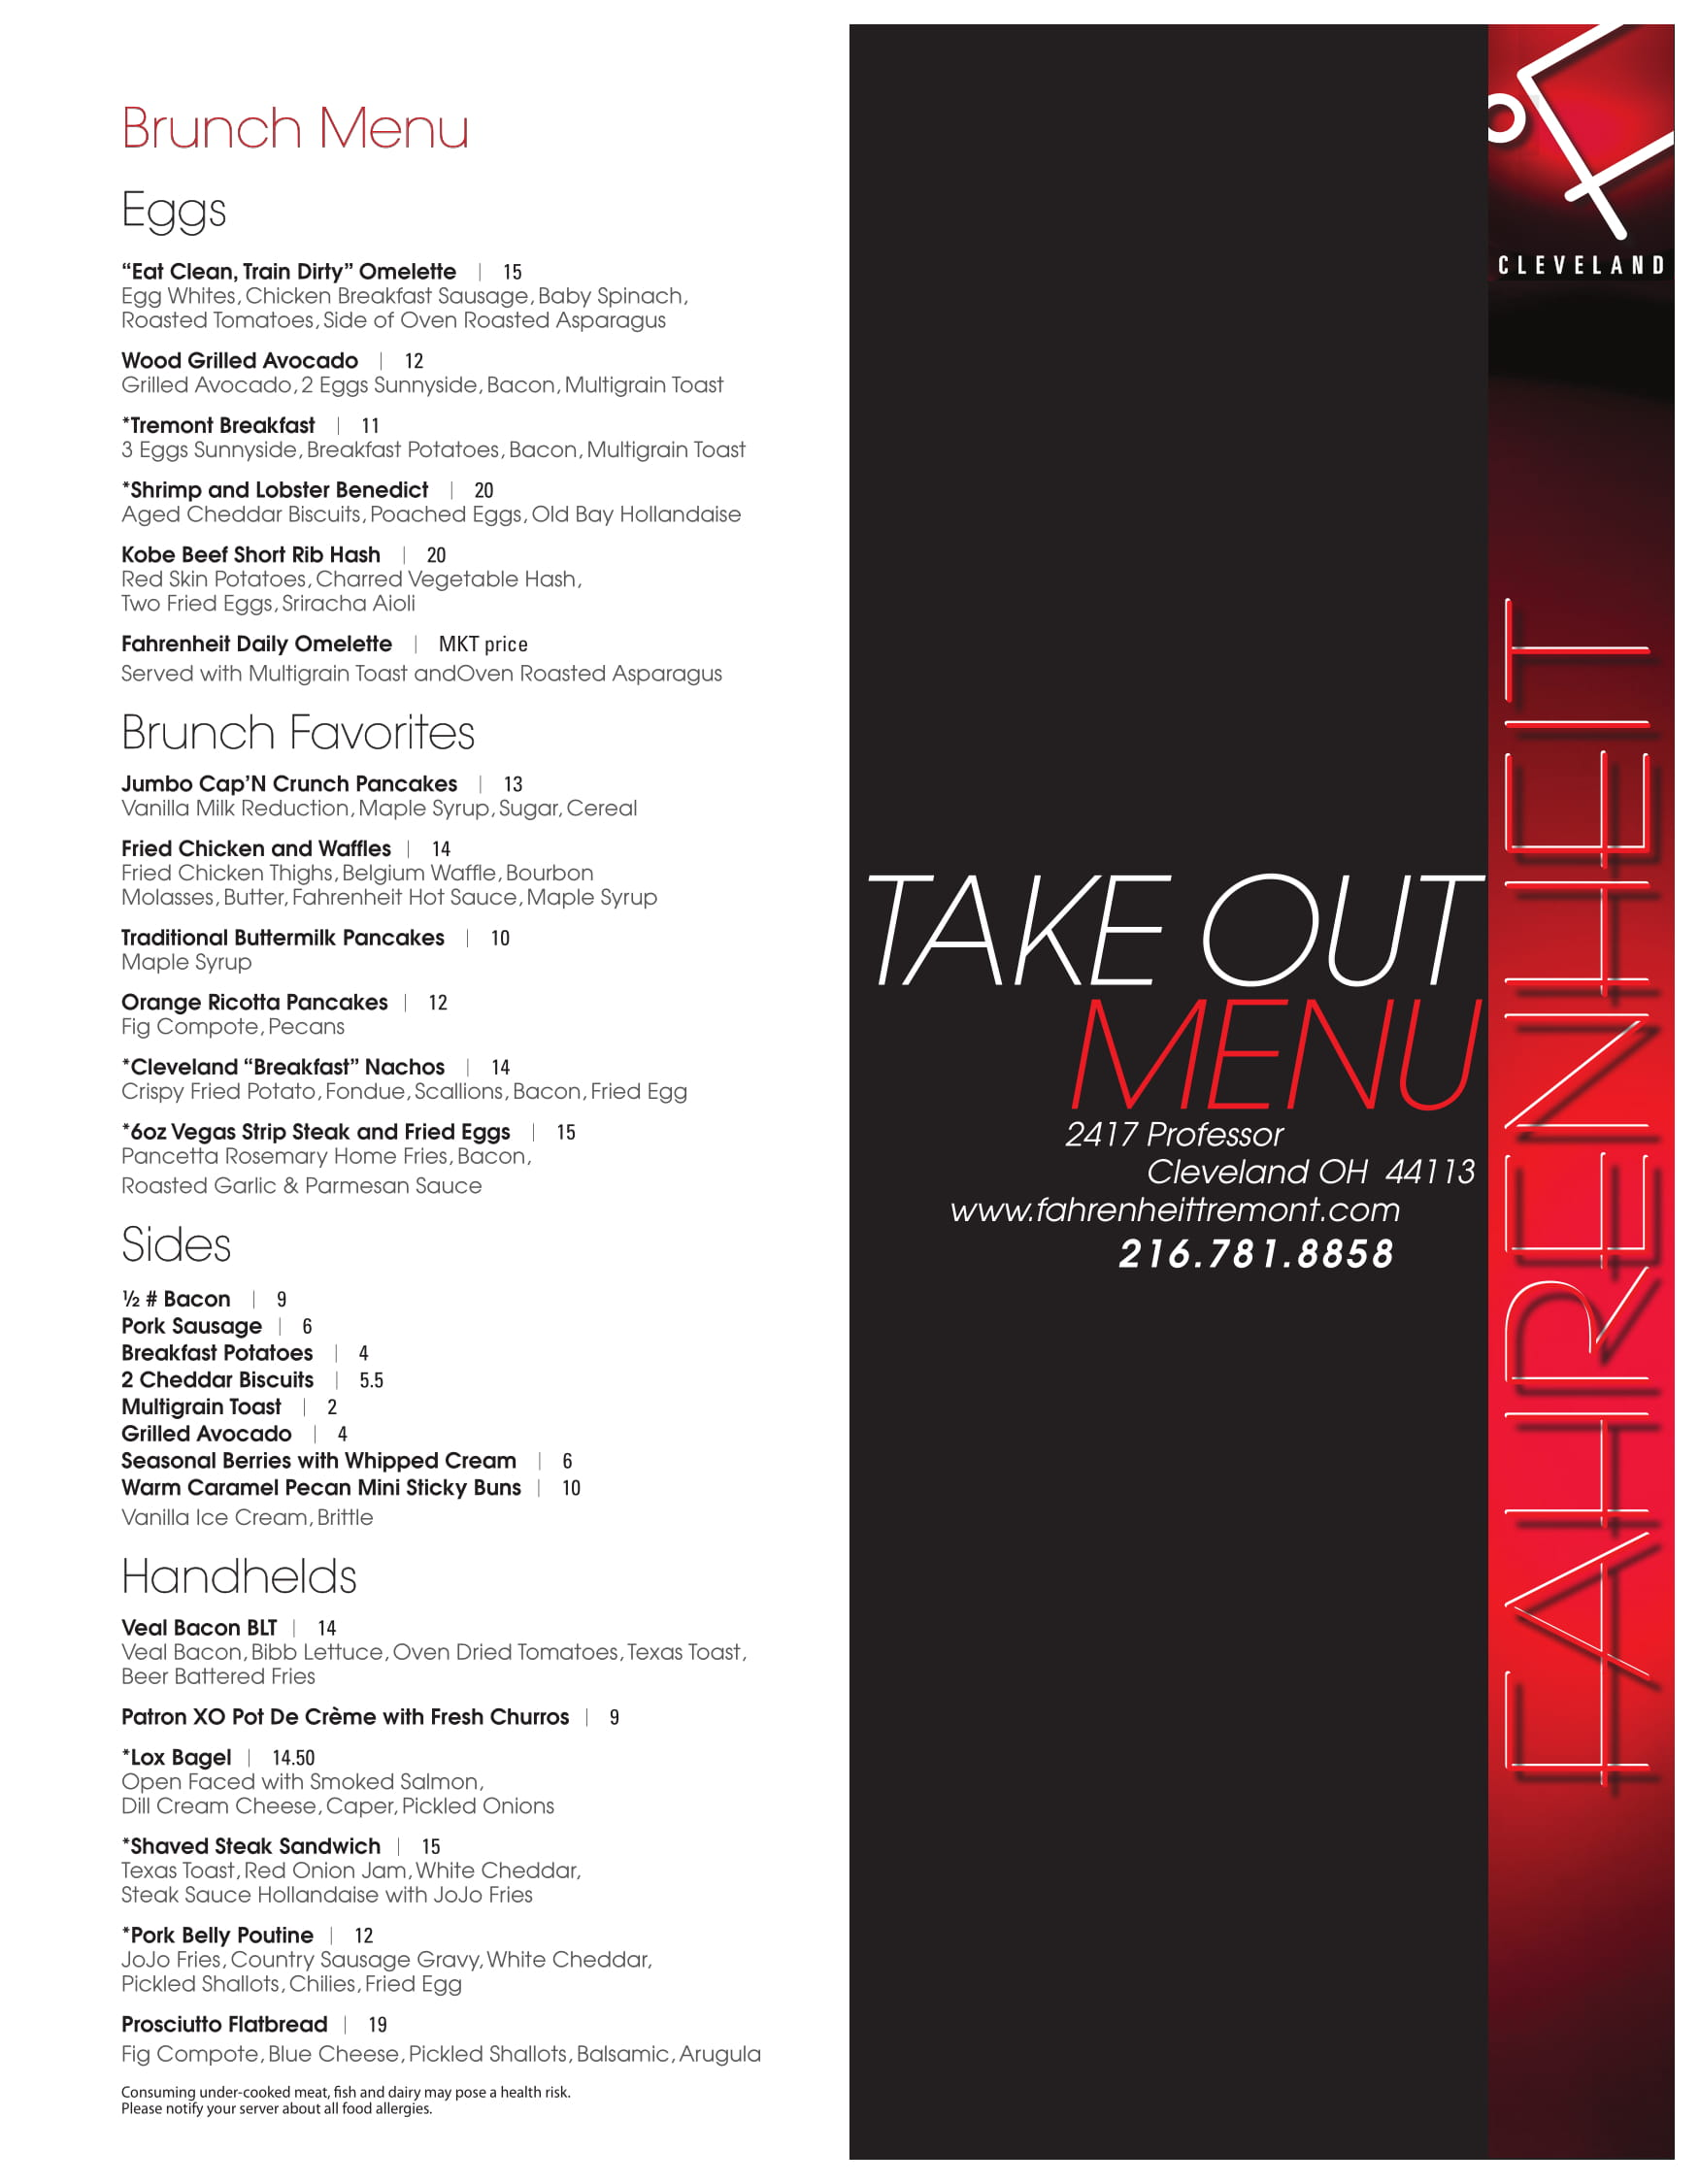 Take Out Menu - Fahrenheit Restaurant Cleveland